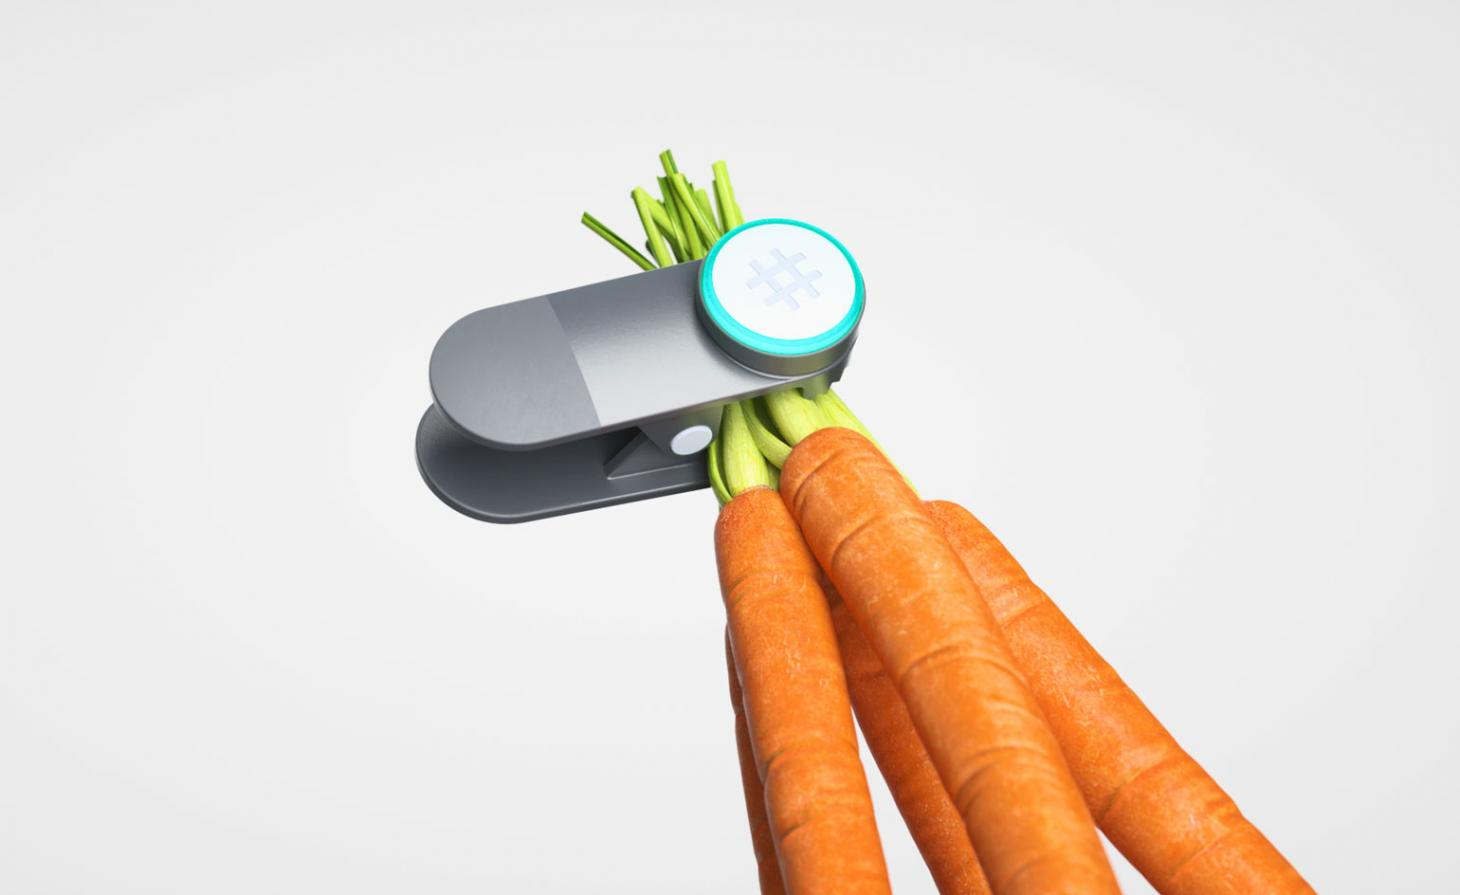 Ovie Smart Kitchen Gadgets Look To The Future Of Cooking Wallpaper